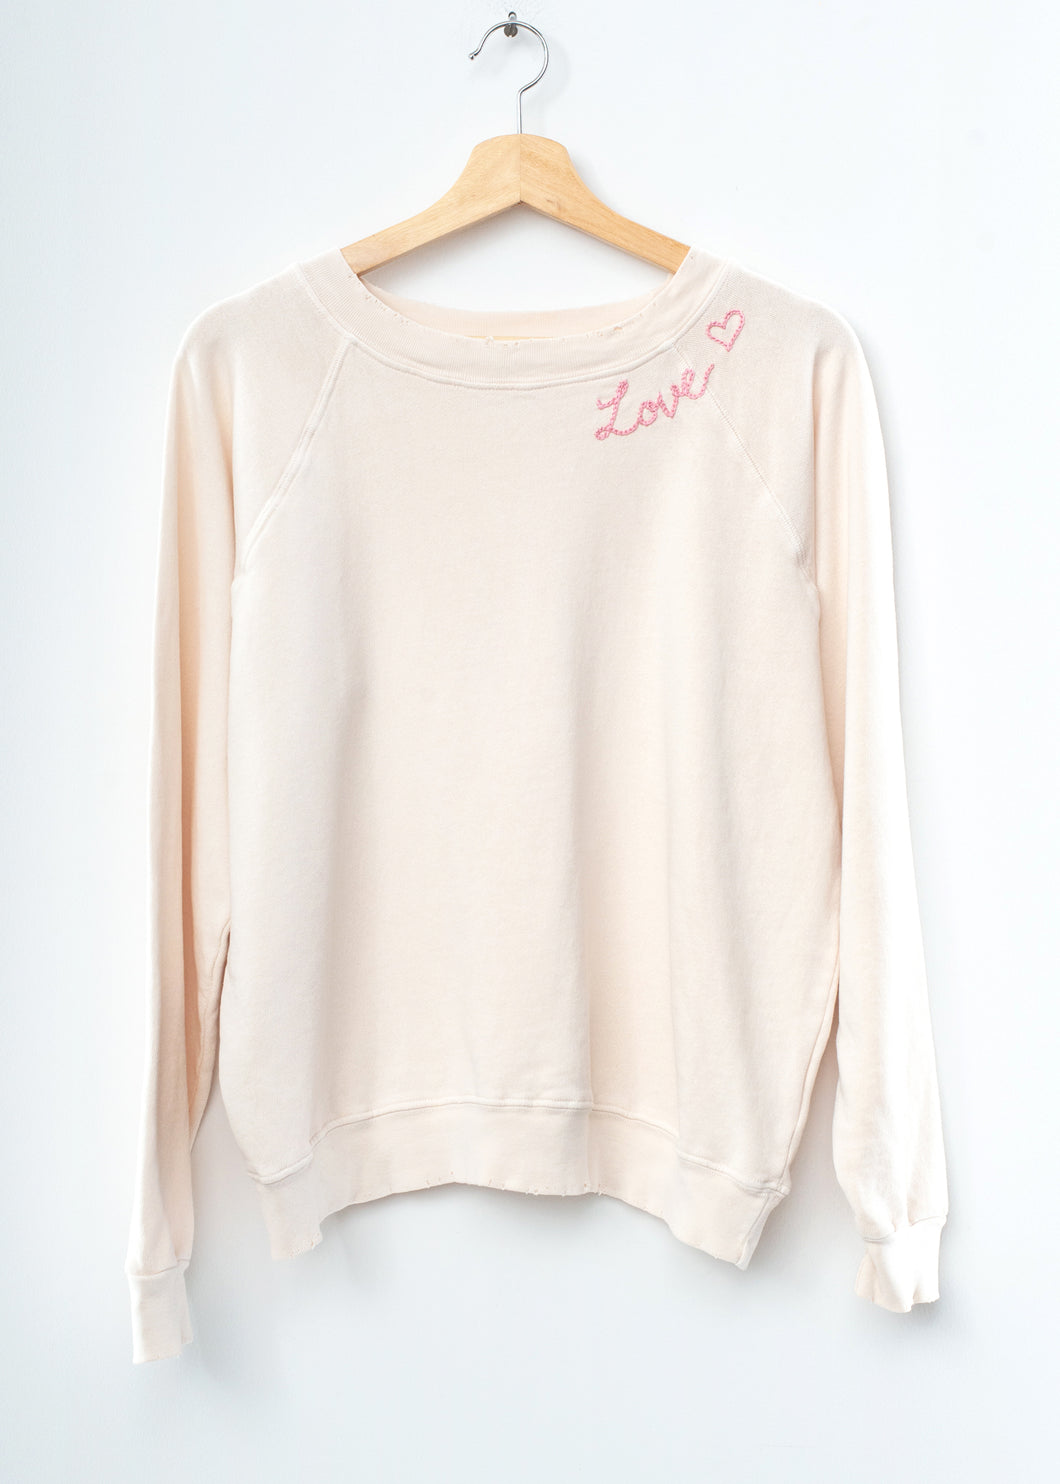 Mojave Love ❤️ Sweatshirt - Cream